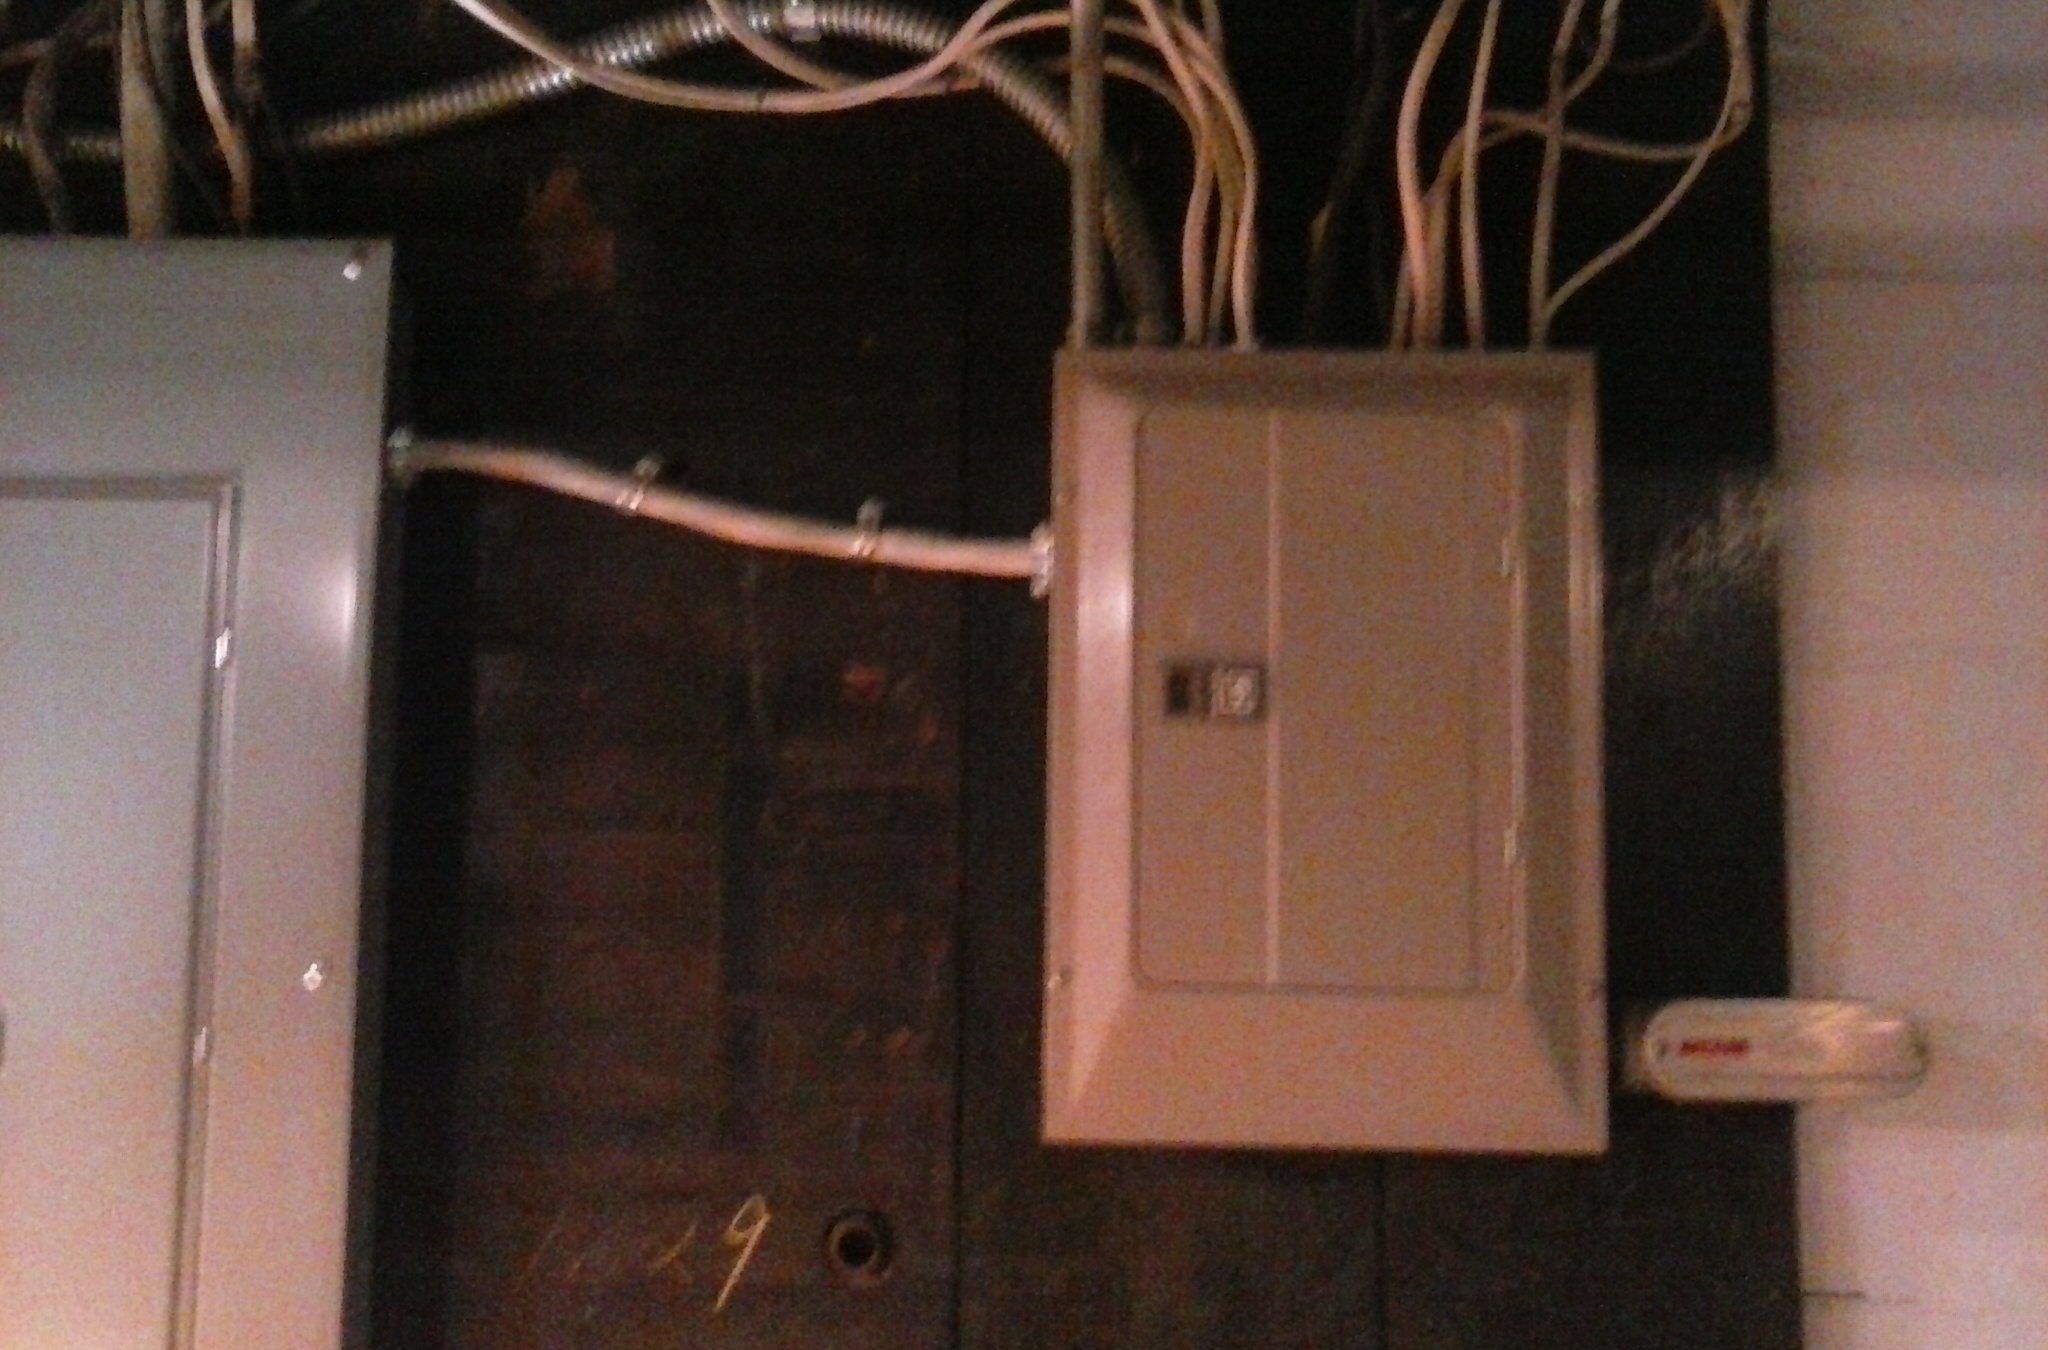 Two Feeds To A Subpanel How Much Costs Electrical Circuit Main Panel And Sub New Construction Wiring 0331161154